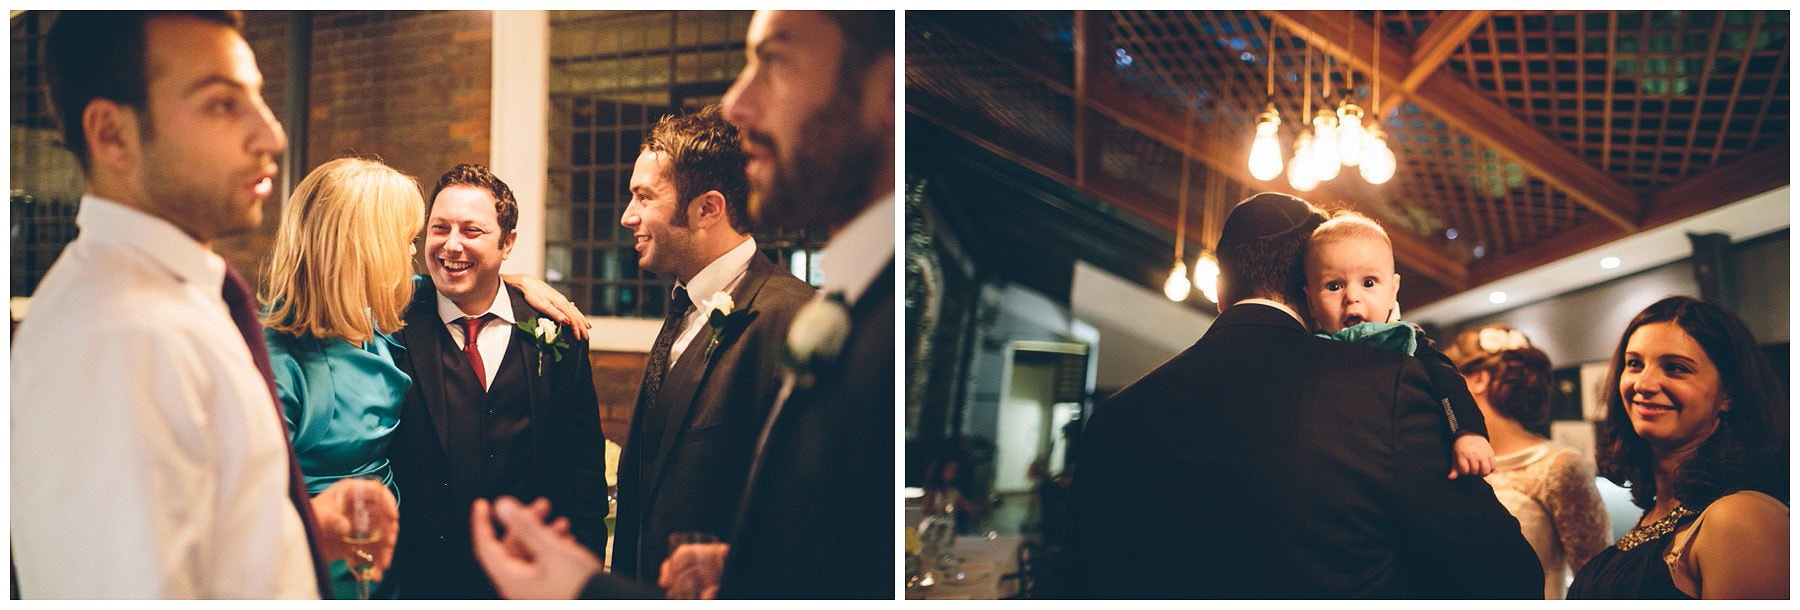 Bevis_Marks_Synagogue_Wedding_Photography_0086